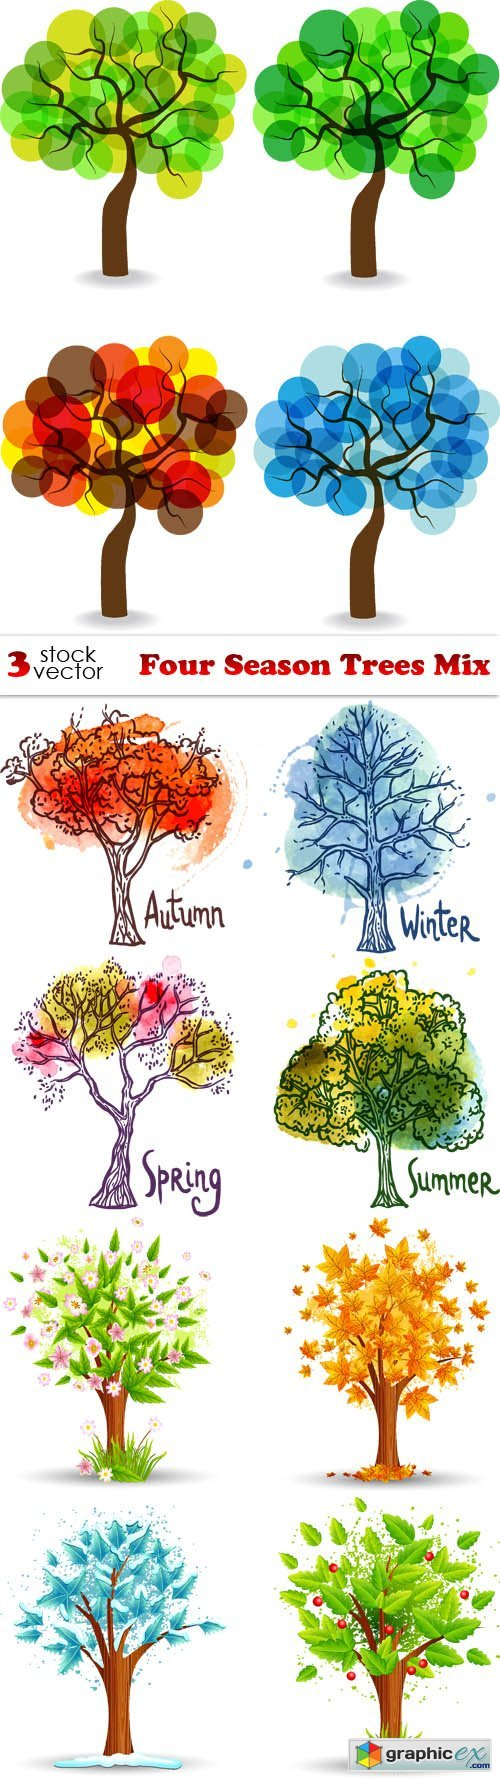 Vectors - Four Season Trees Mix